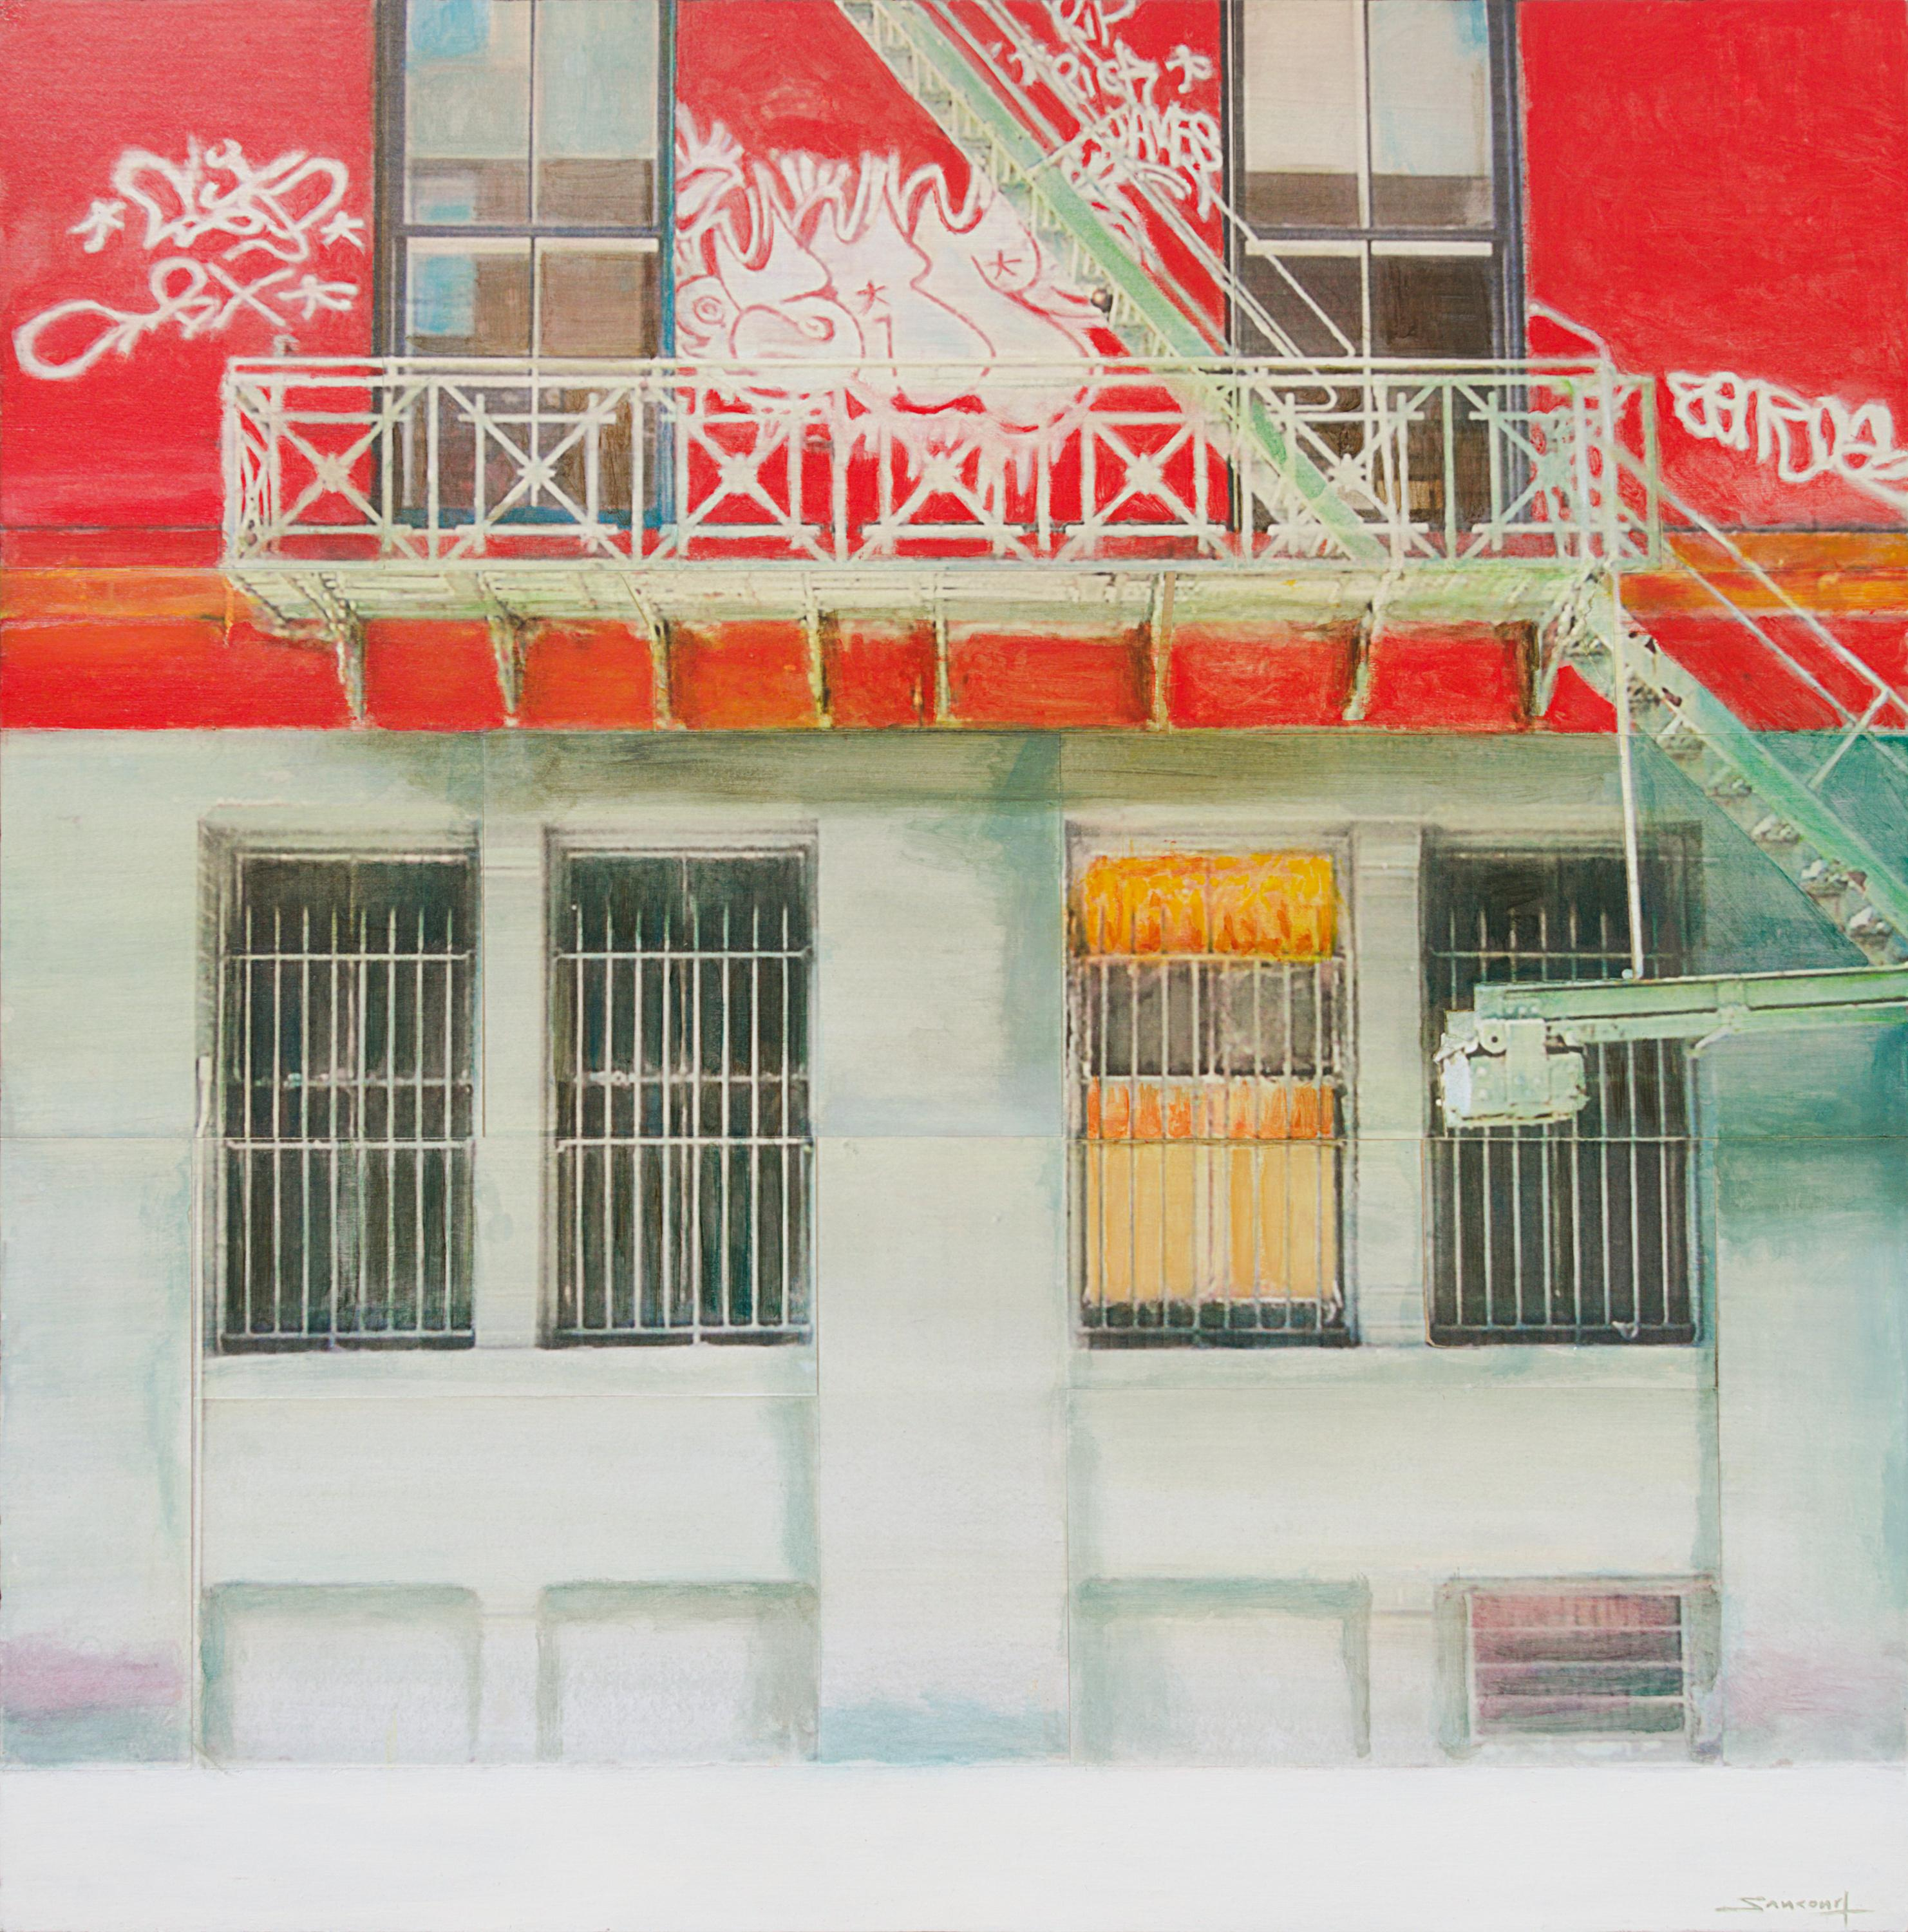 """""""New York Street"""", Spray Painted White and Red Wall with Metal Staircase"""